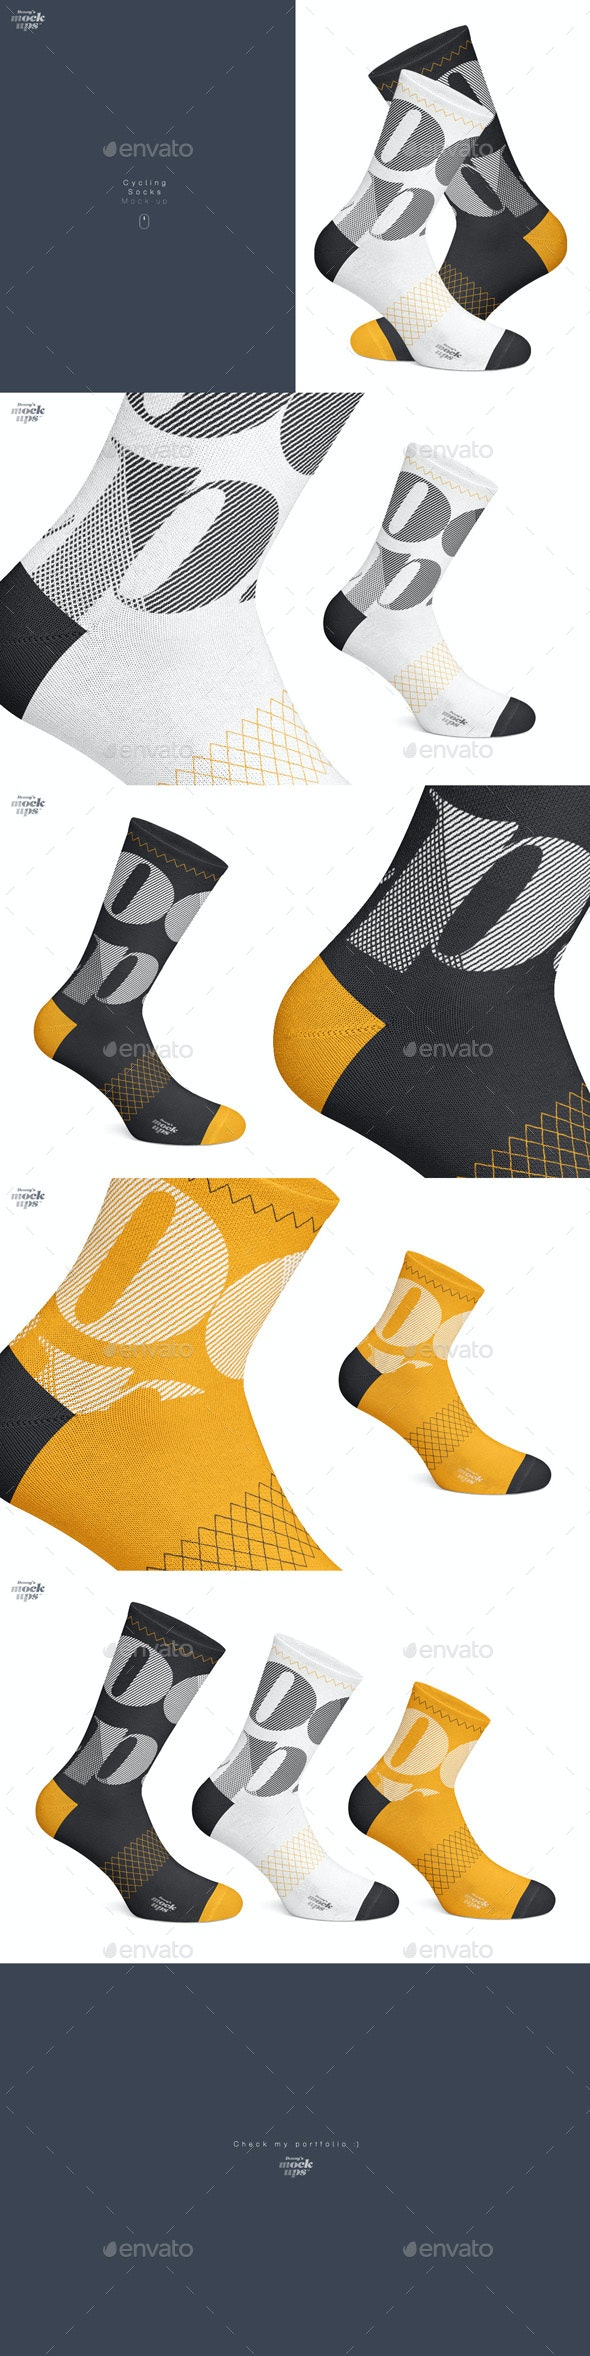 Cycling Socks 3 Types Mockup - Miscellaneous Apparel